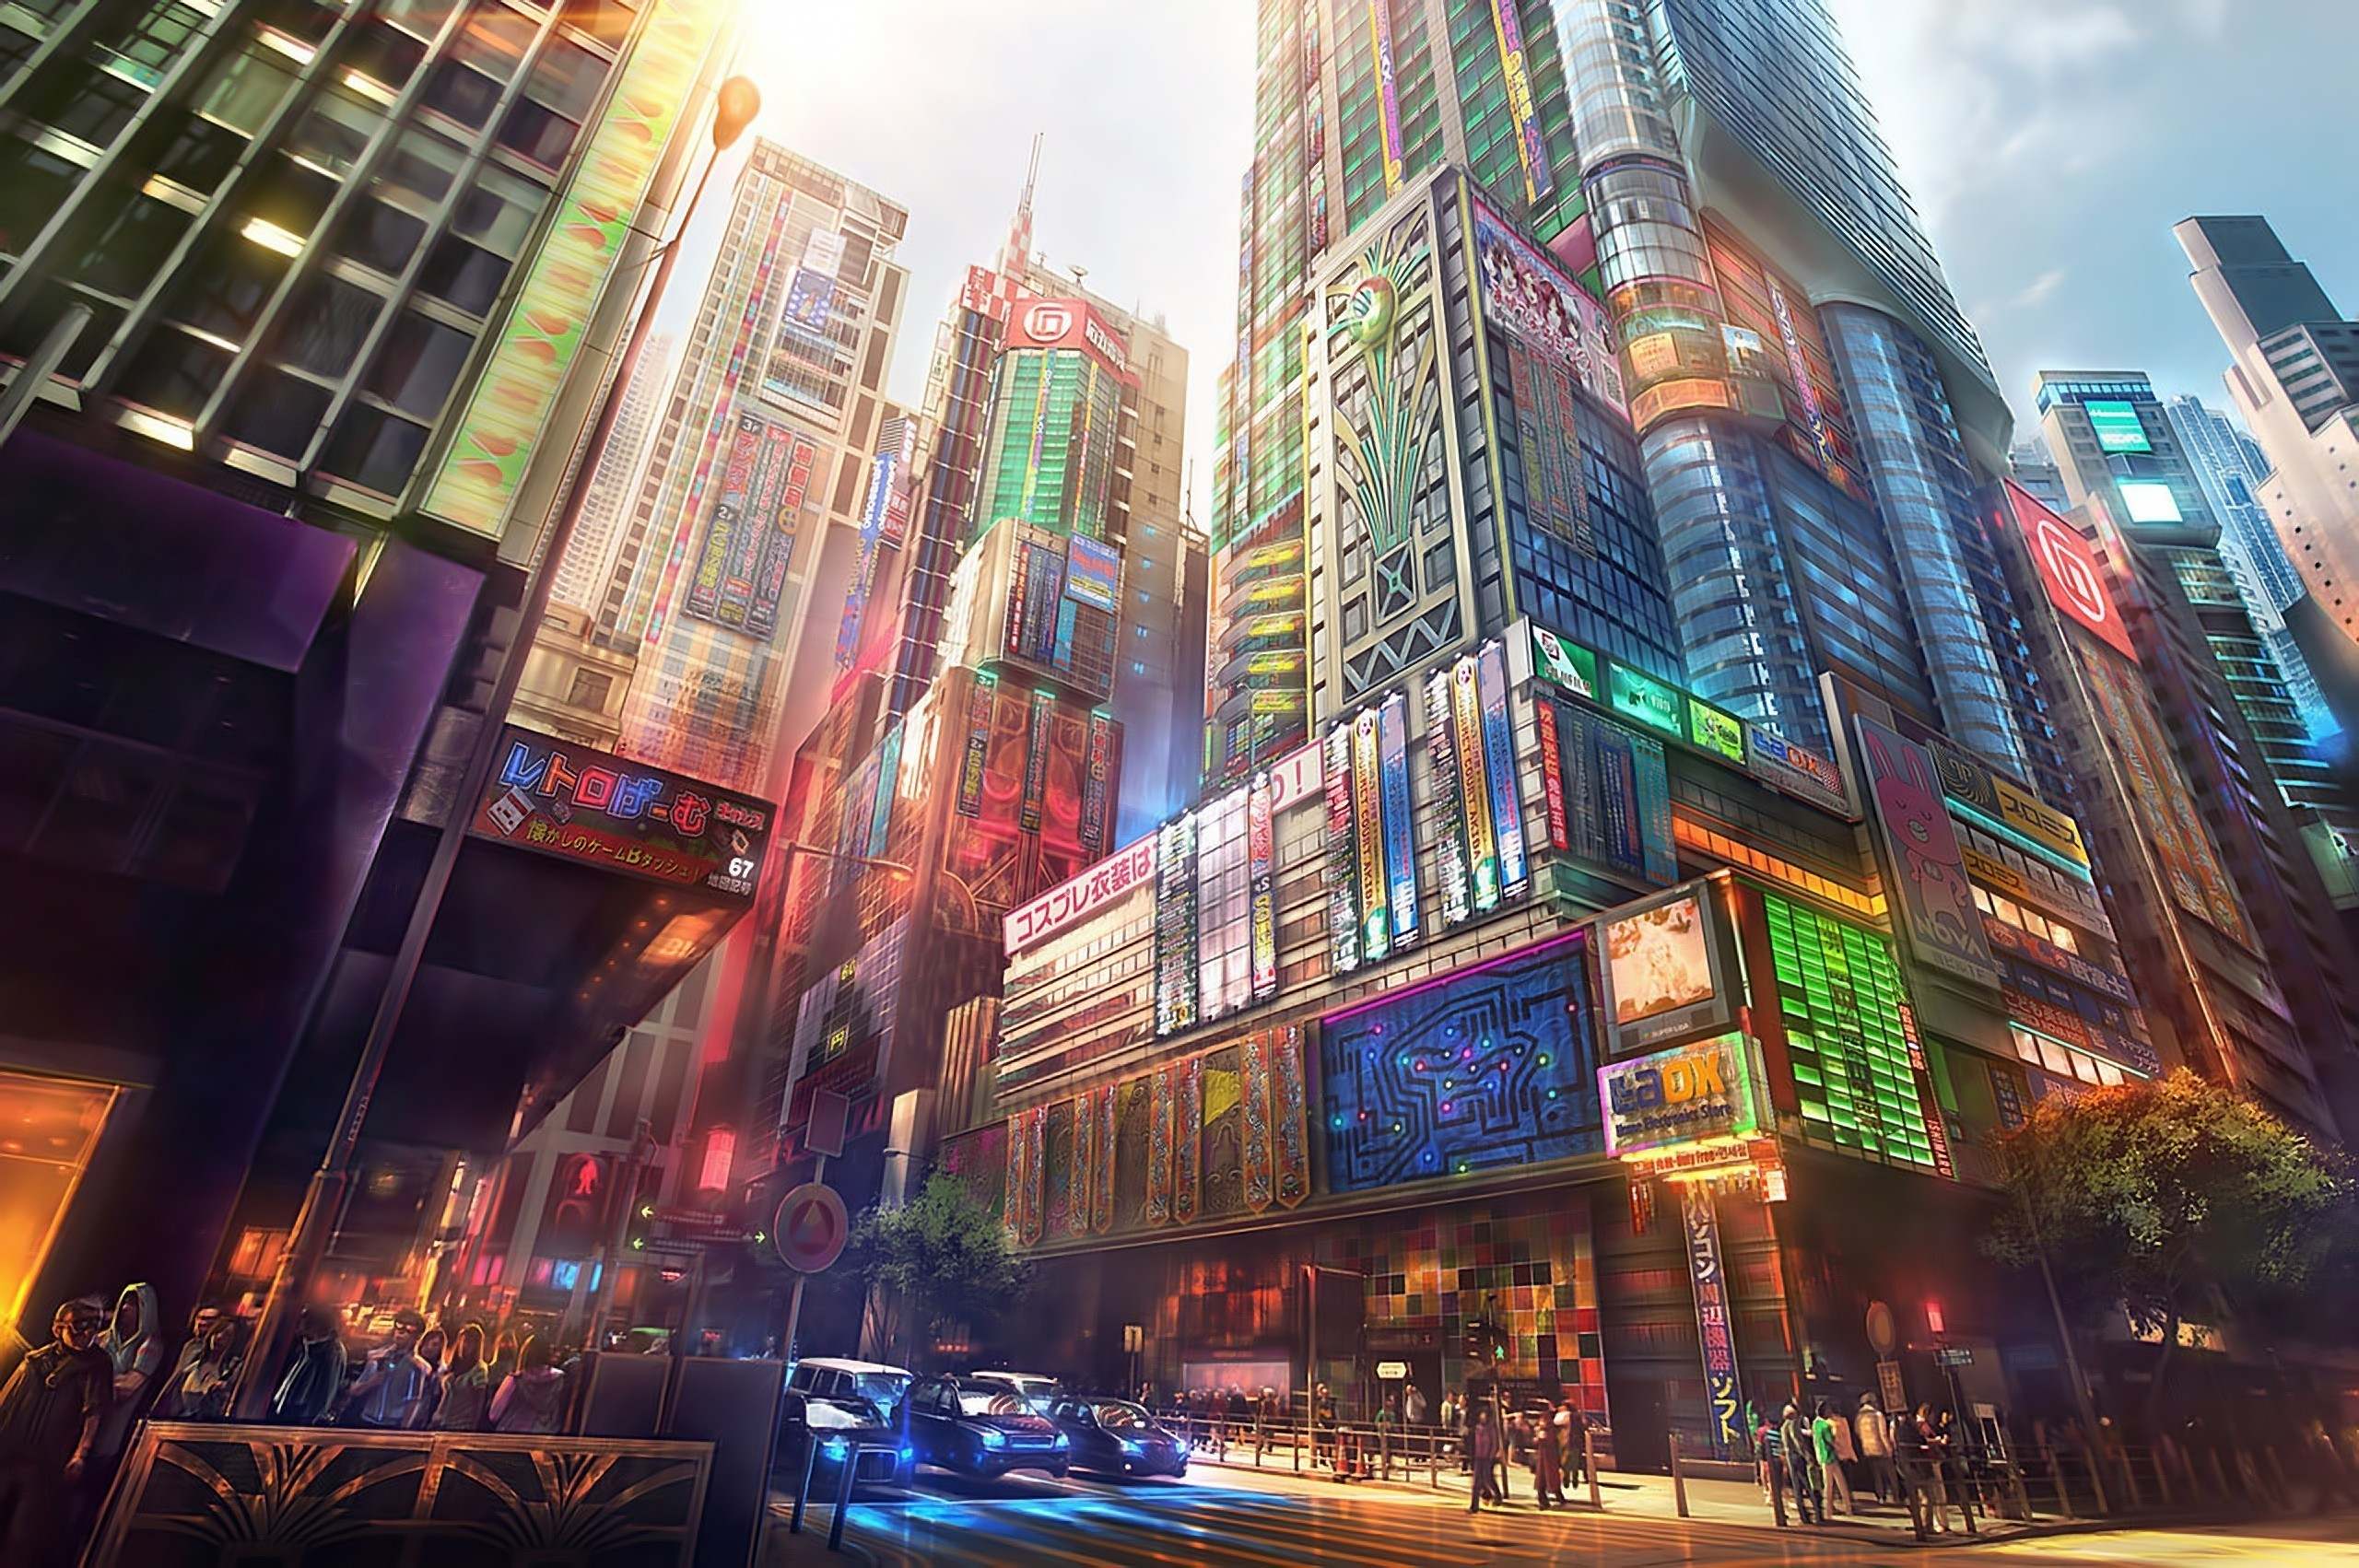 japan-cityscapes-futuristic-digital-art-artwork-2560x1702-wallpaper.jpg